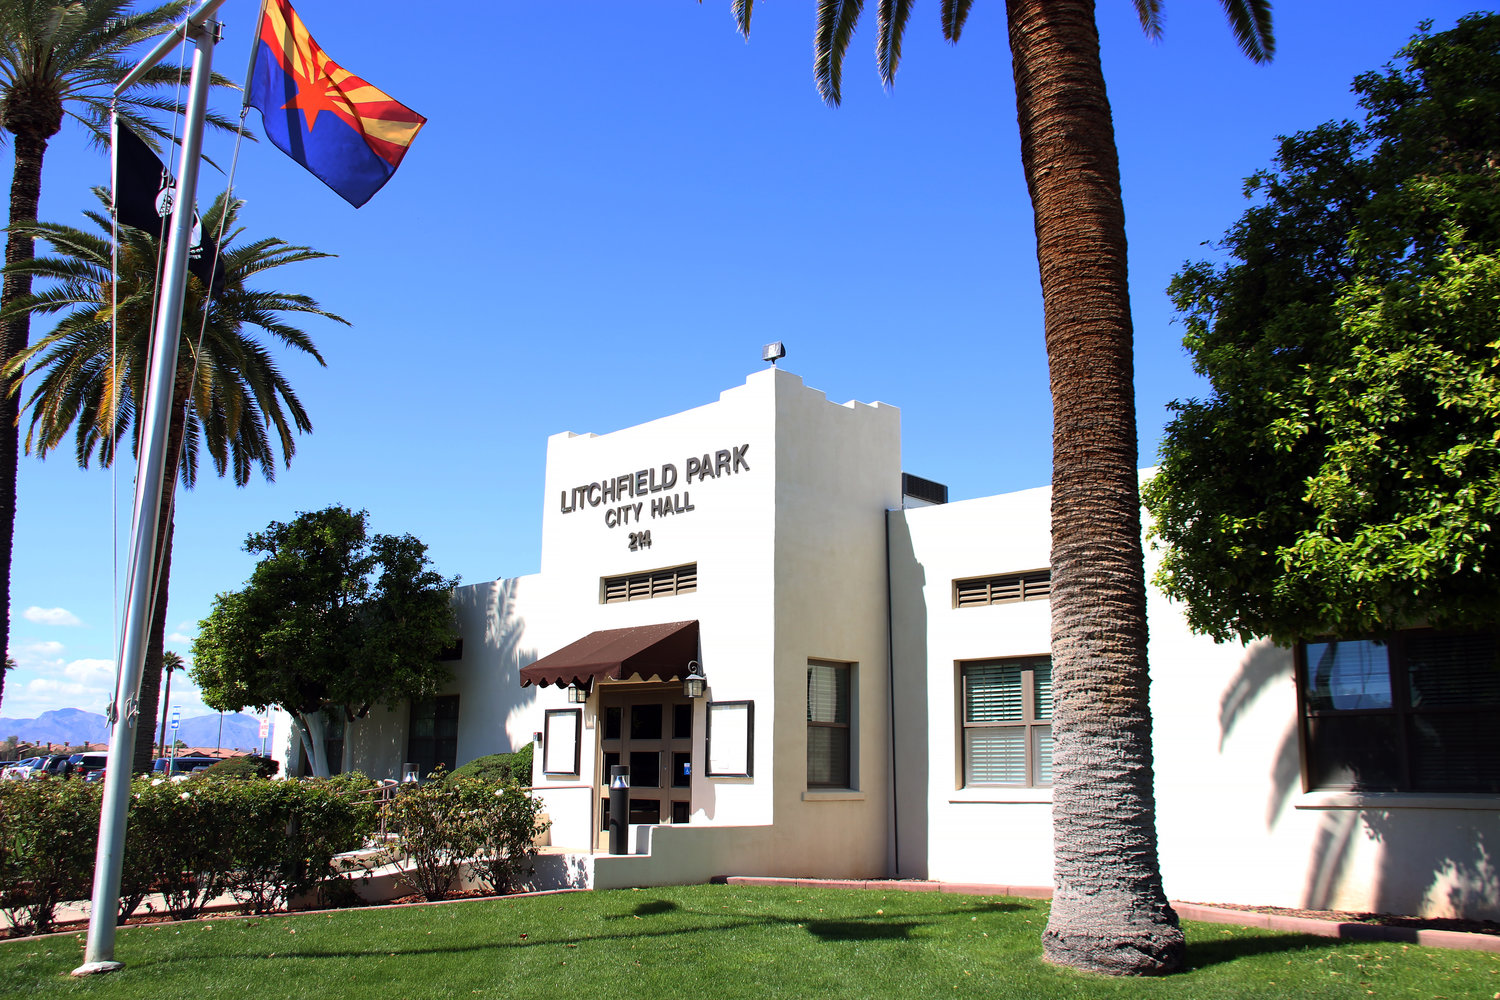 As of June 29, Litchfield Park City Hall remained open; but the City Council was expected to discuss potential closure, modifying staff schedules and other COVID-19 mitigation measures during a special meeting Tuesday, June 30.